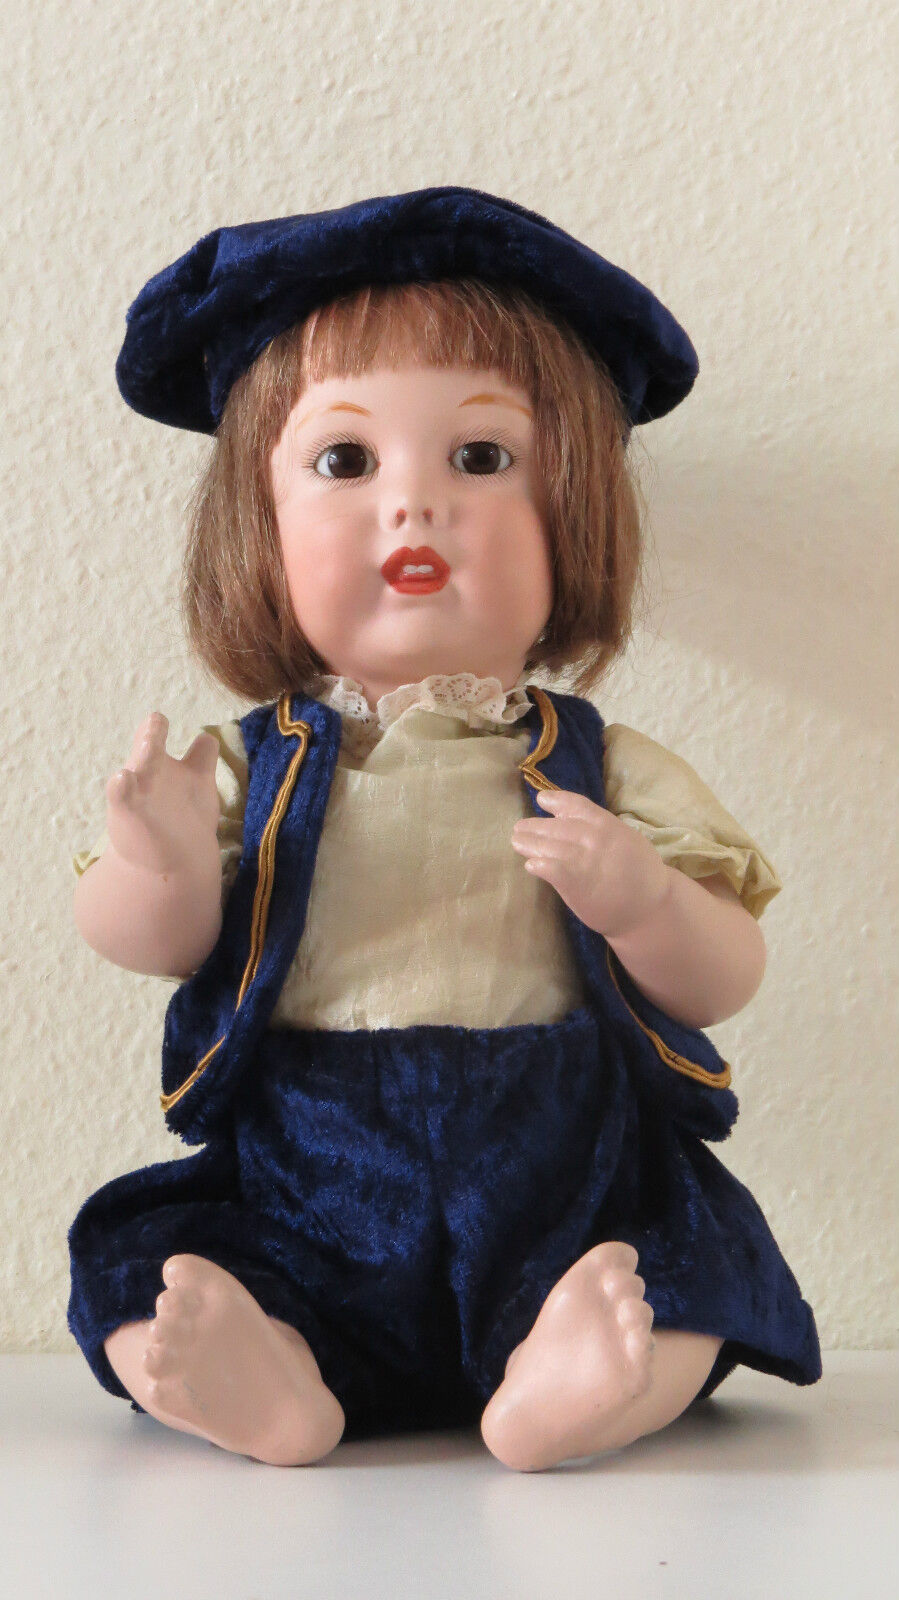 SFBJ    251   38 cm   15,2 Inch    Poupée Ancienne Reproduction Antique Doll